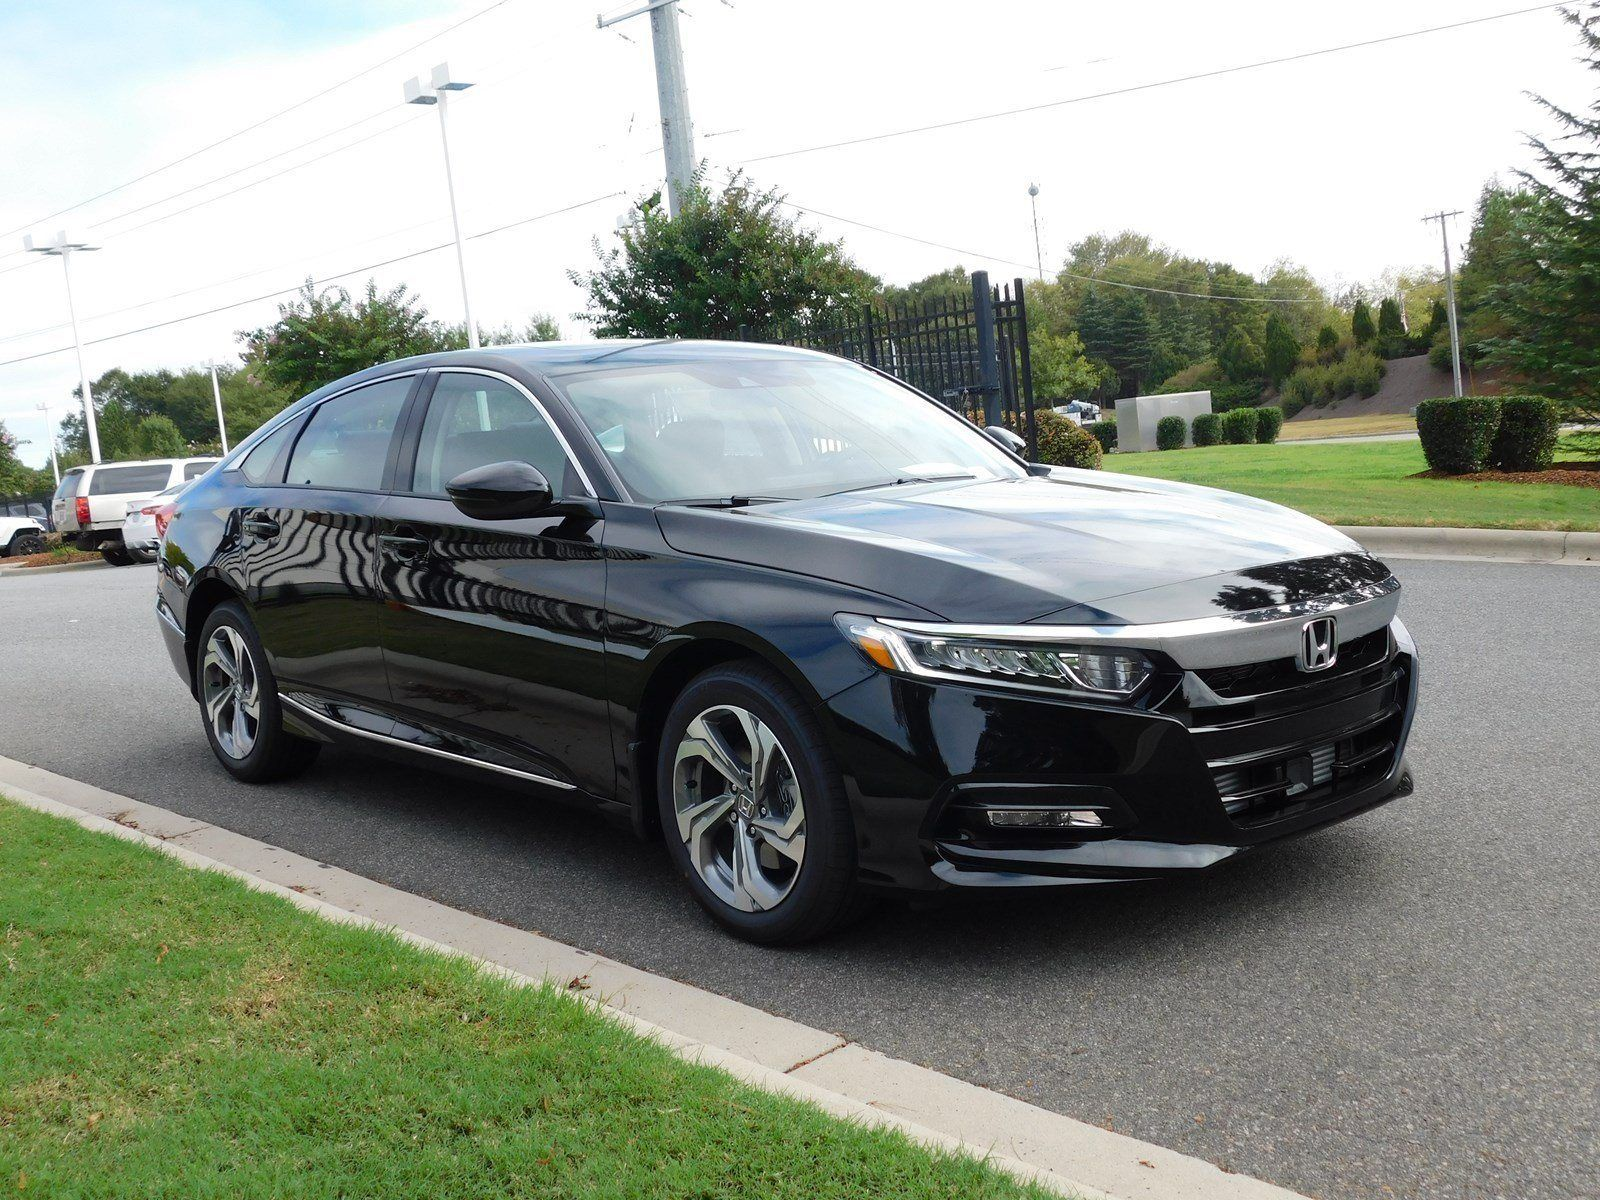 2020 Honda Accord Coupe Sedan Interior In 2020 Accord Coupe Honda Accord Coupe Honda Accord